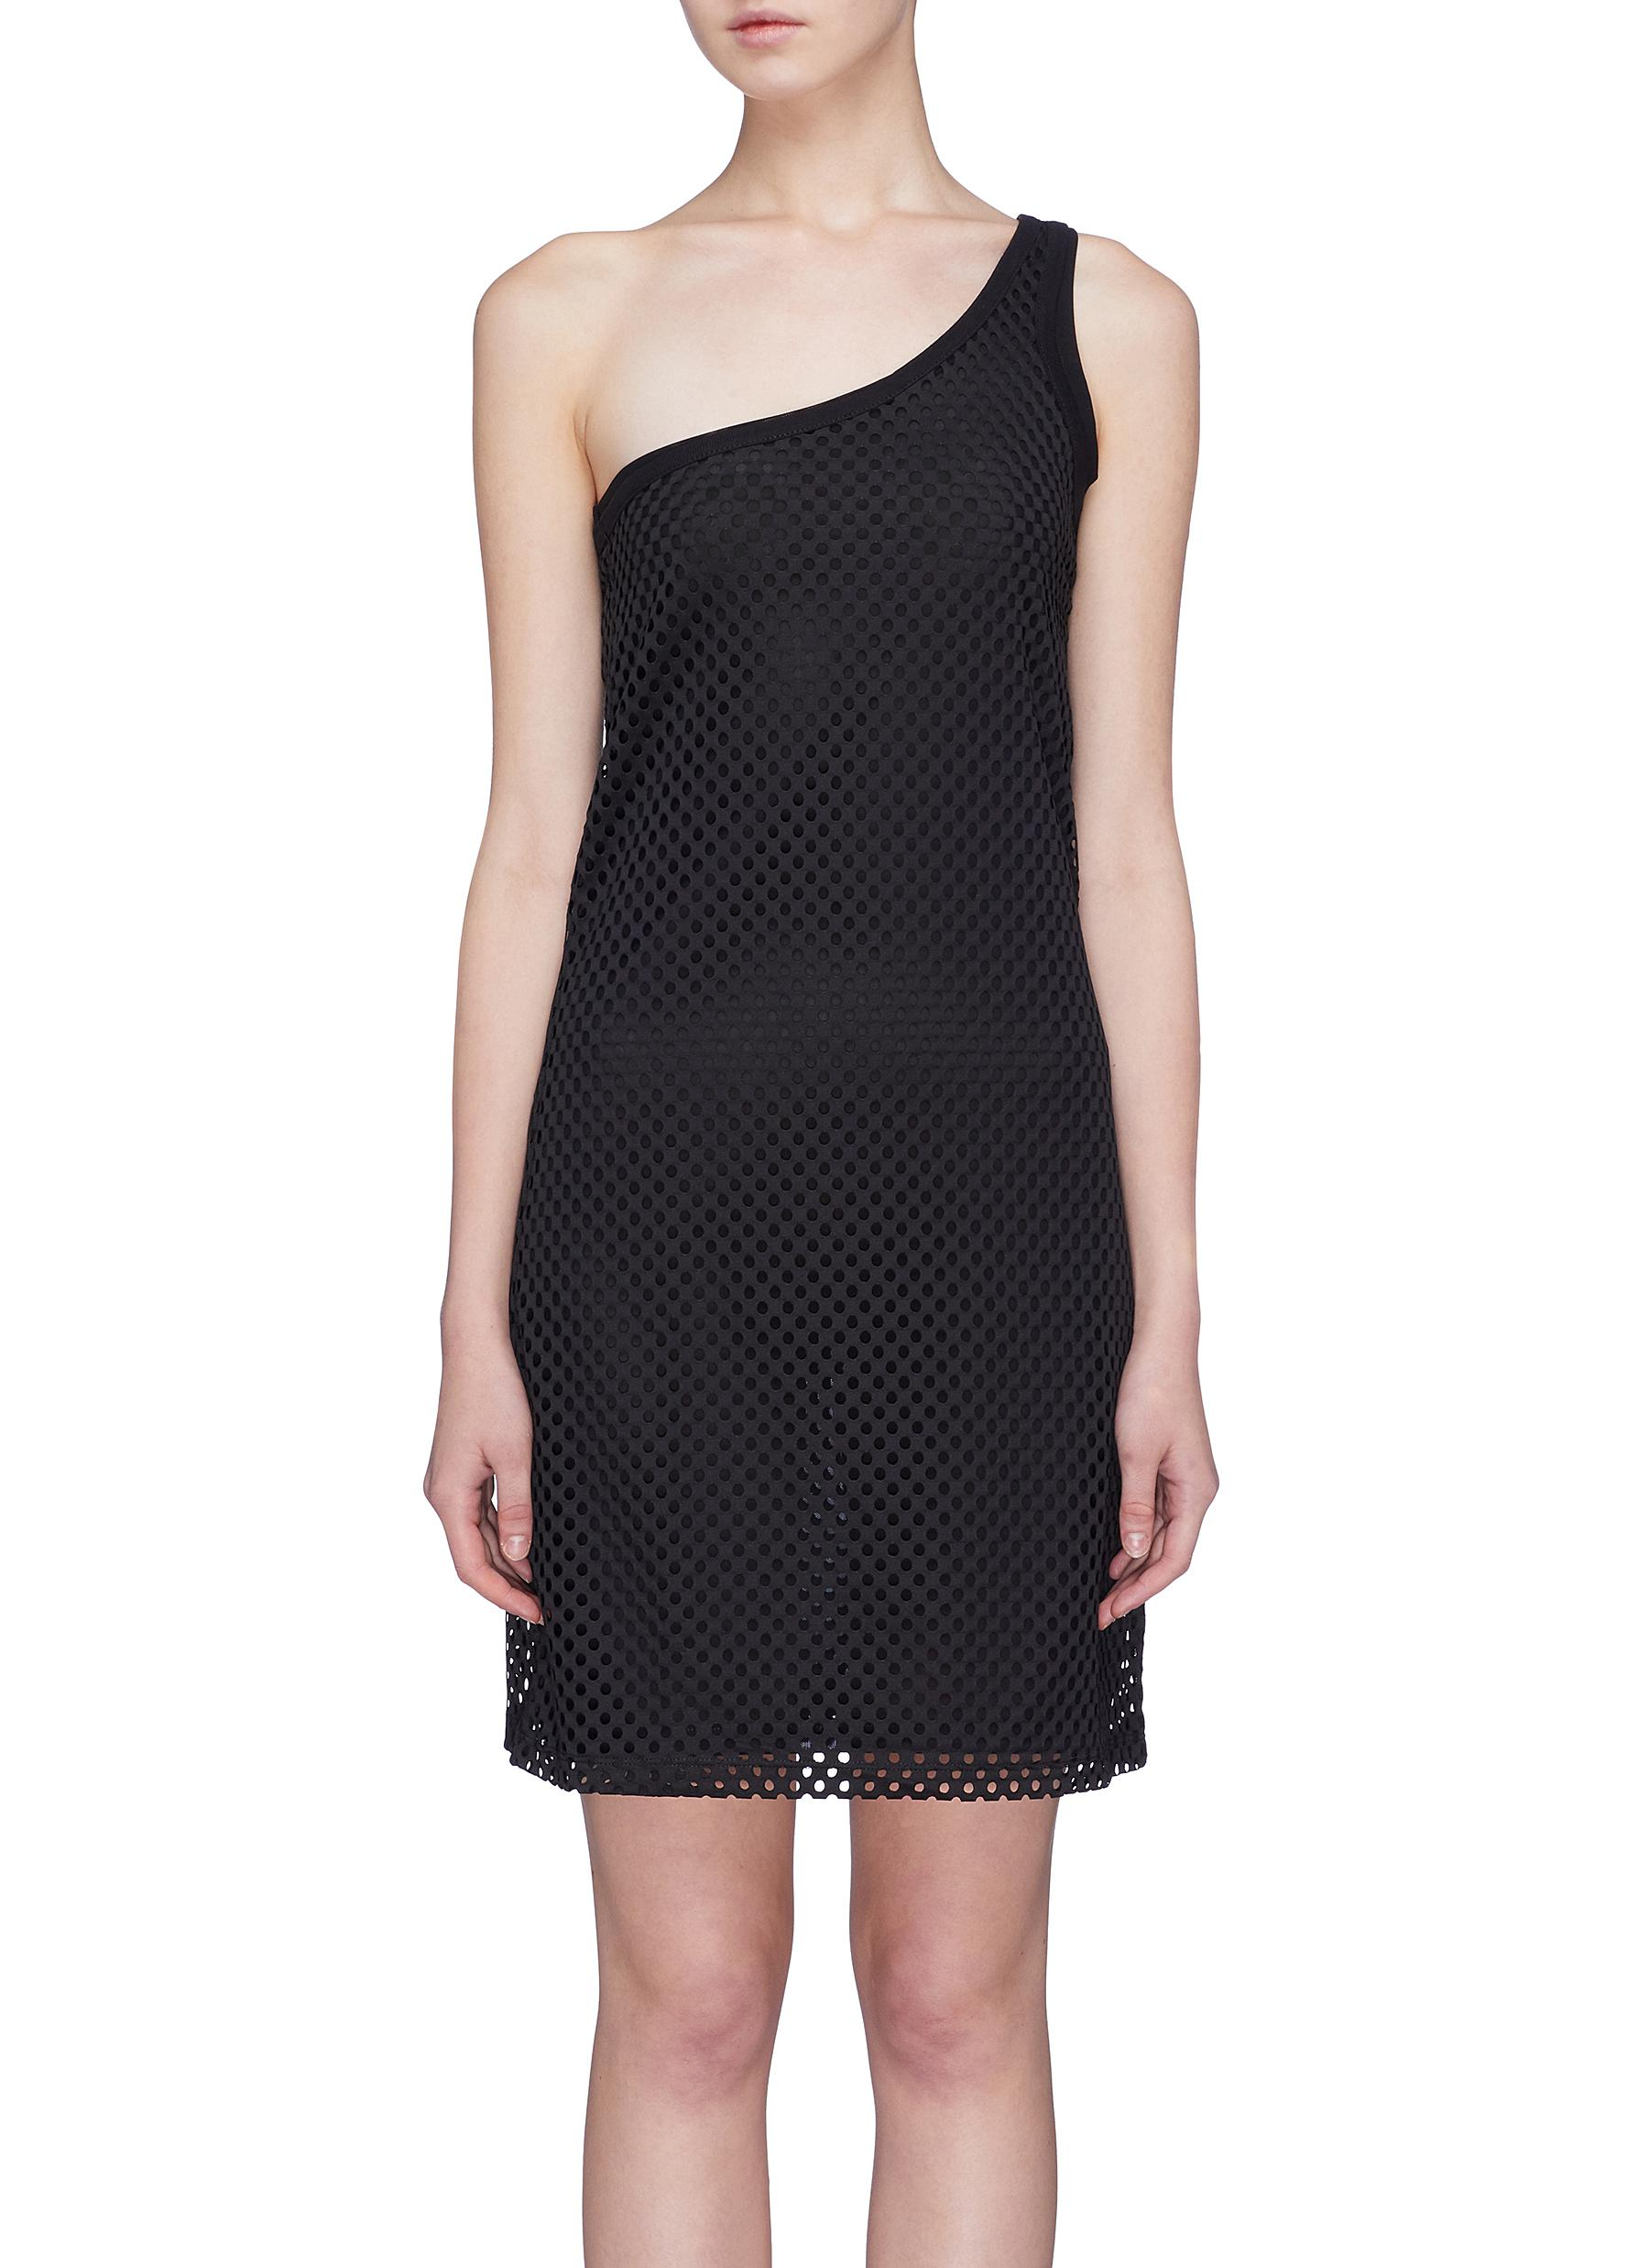 Footlocker Pictures For Sale Outlet Footlocker Black Mesh One-Shoulder Dress Opening Ceremony Authentic For Sale Release Dates Cheap Online 0Rv2btepbO